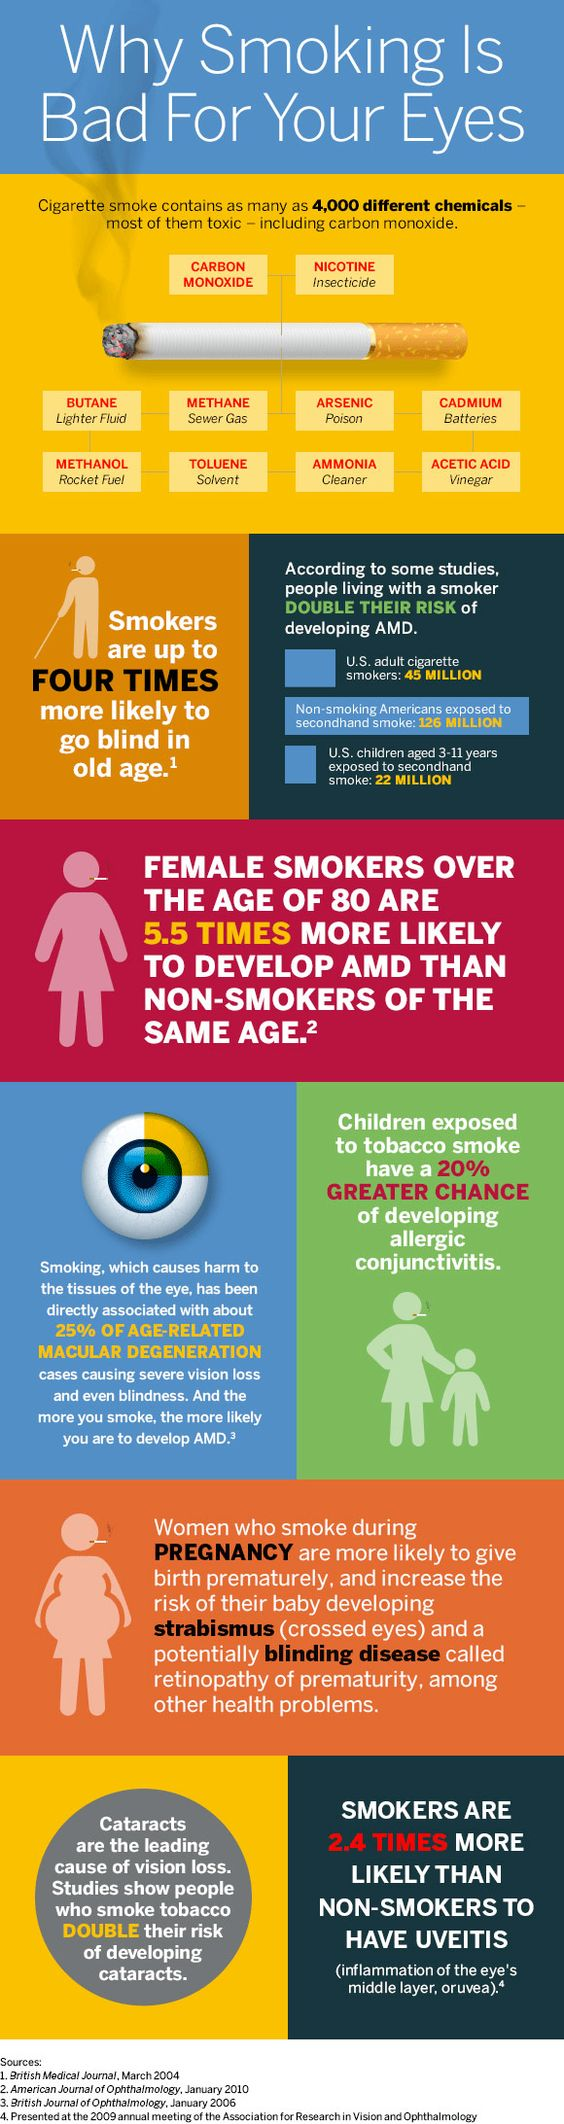 WHY SMOKING IS BAD FOR EYES.jpg